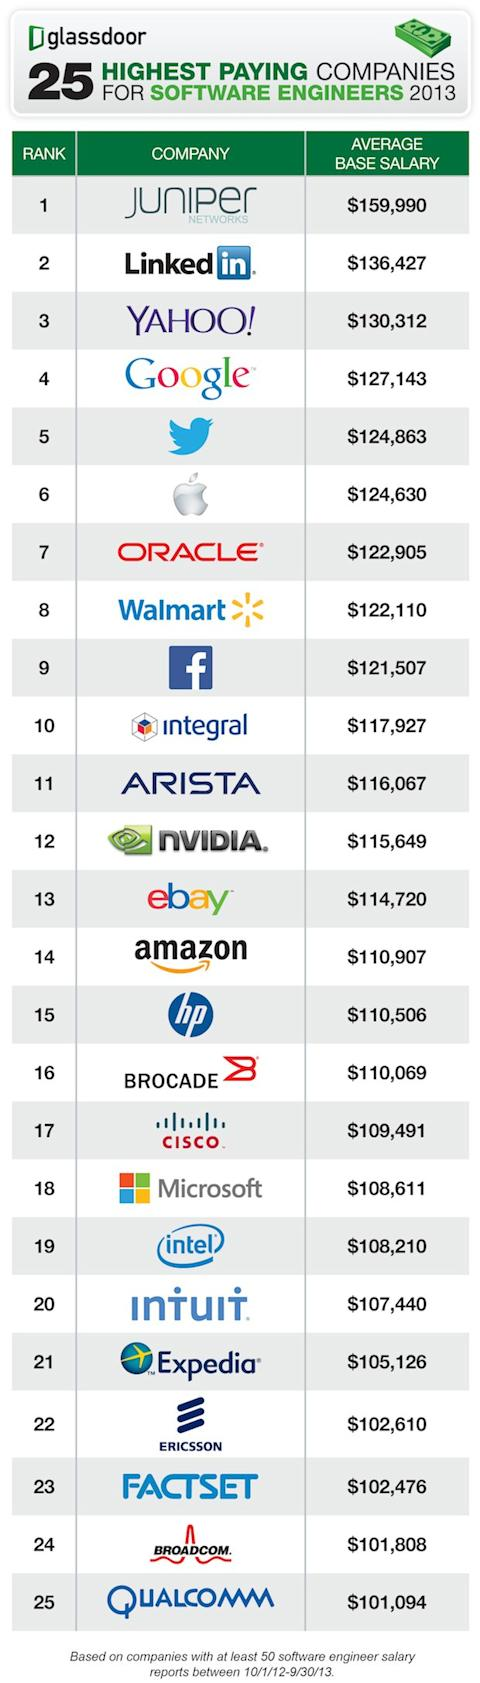 25 Highest Paying Companies for Software Engineers